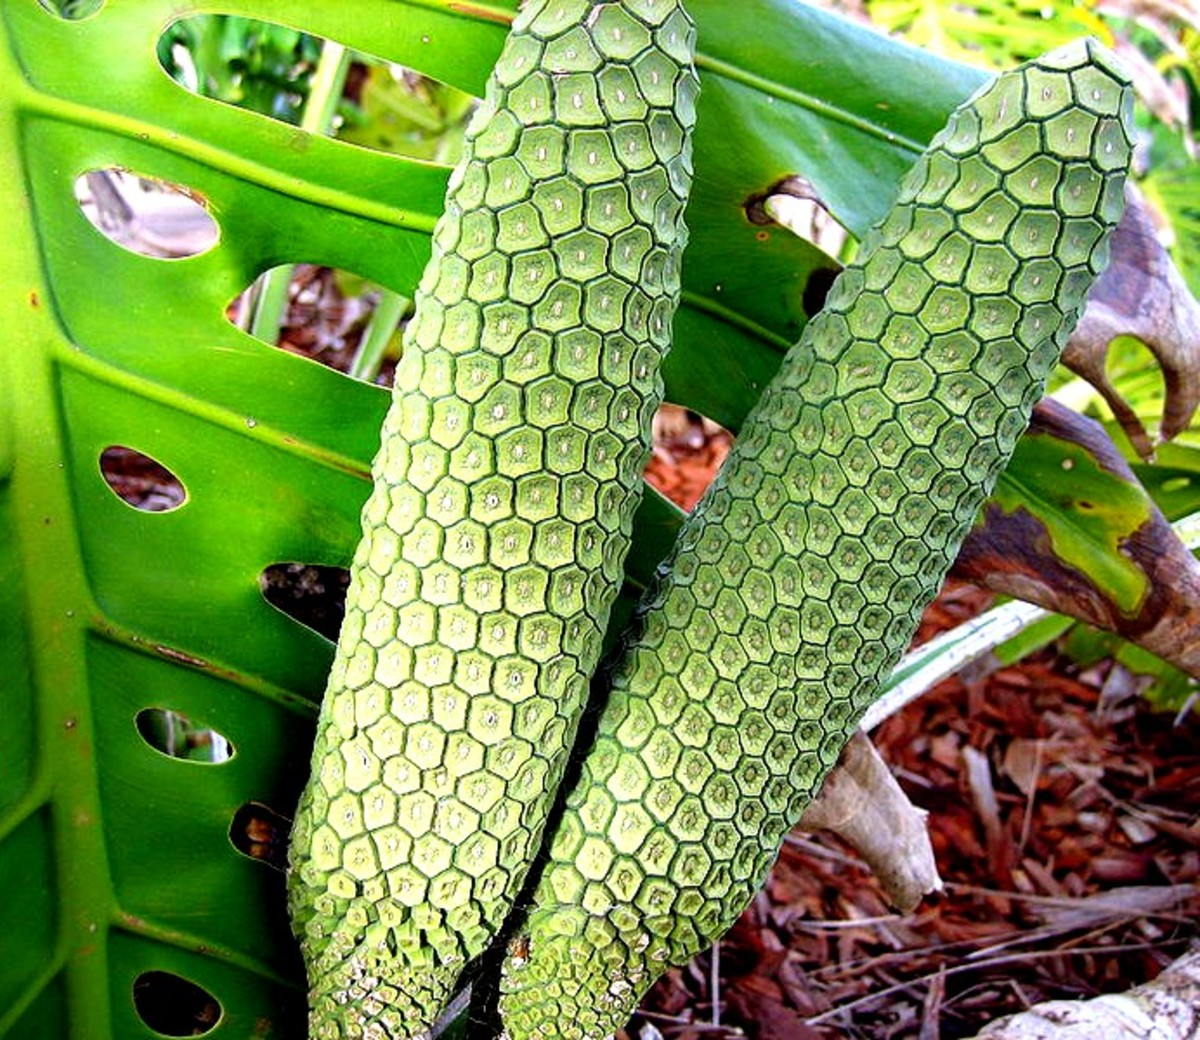 Monstera deliciosa, the delicious monster fruit that can kill you if eaten at the wrong time